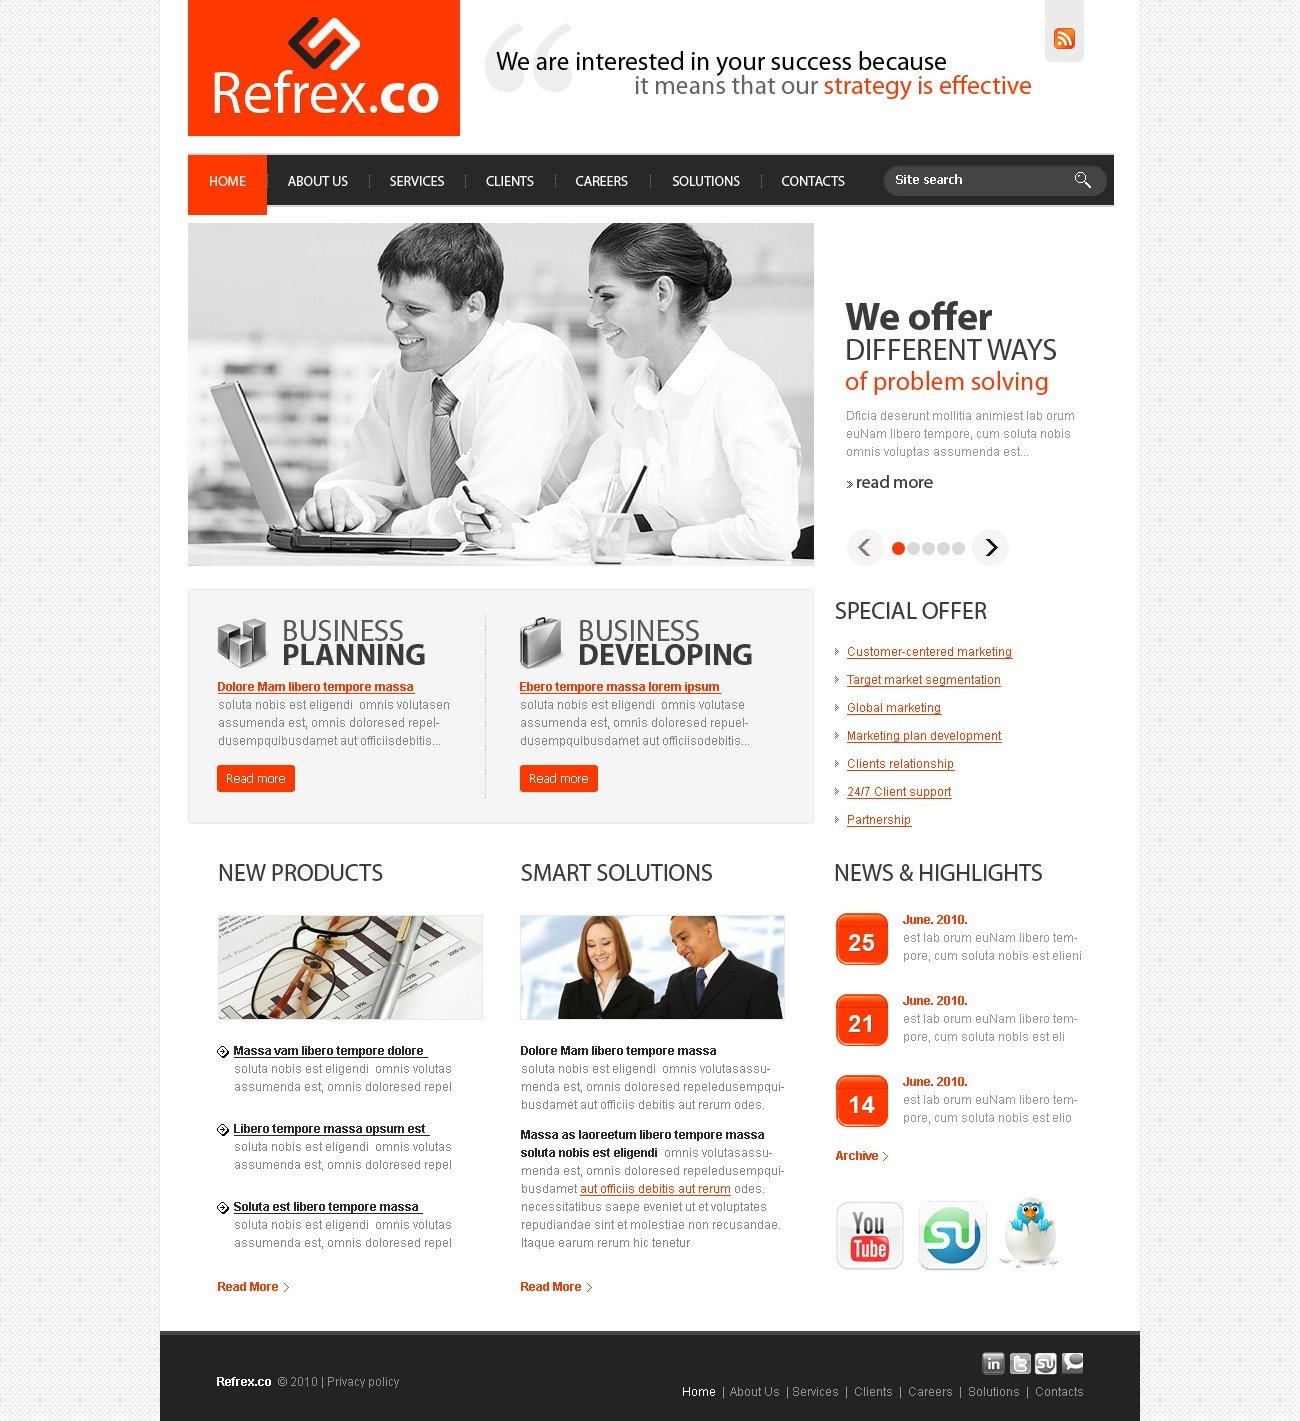 The Reflex Company PSD Design 54279, one of the best PSD templates of its kind (business, flash 8, wide), also known as reflex company PSD template, business company PSD template, corporate solutions PSD template, innovations PSD template, contacts PSD template, service PSD template, support PSD template, information dealer PSD template, stocks PSD template, team PSD template, success PSD template, money PSD template, marketing PSD template, director PSD template, manager PSD template, analytics PSD template, planning PSD template, limited PSD template, office PSD template, sales and related with reflex company, business company, corporate solutions, innovations, contacts, service, support, information dealer, stocks, team, success, money, marketing, director, manager, analytics, planning, limited, office, sales, etc.